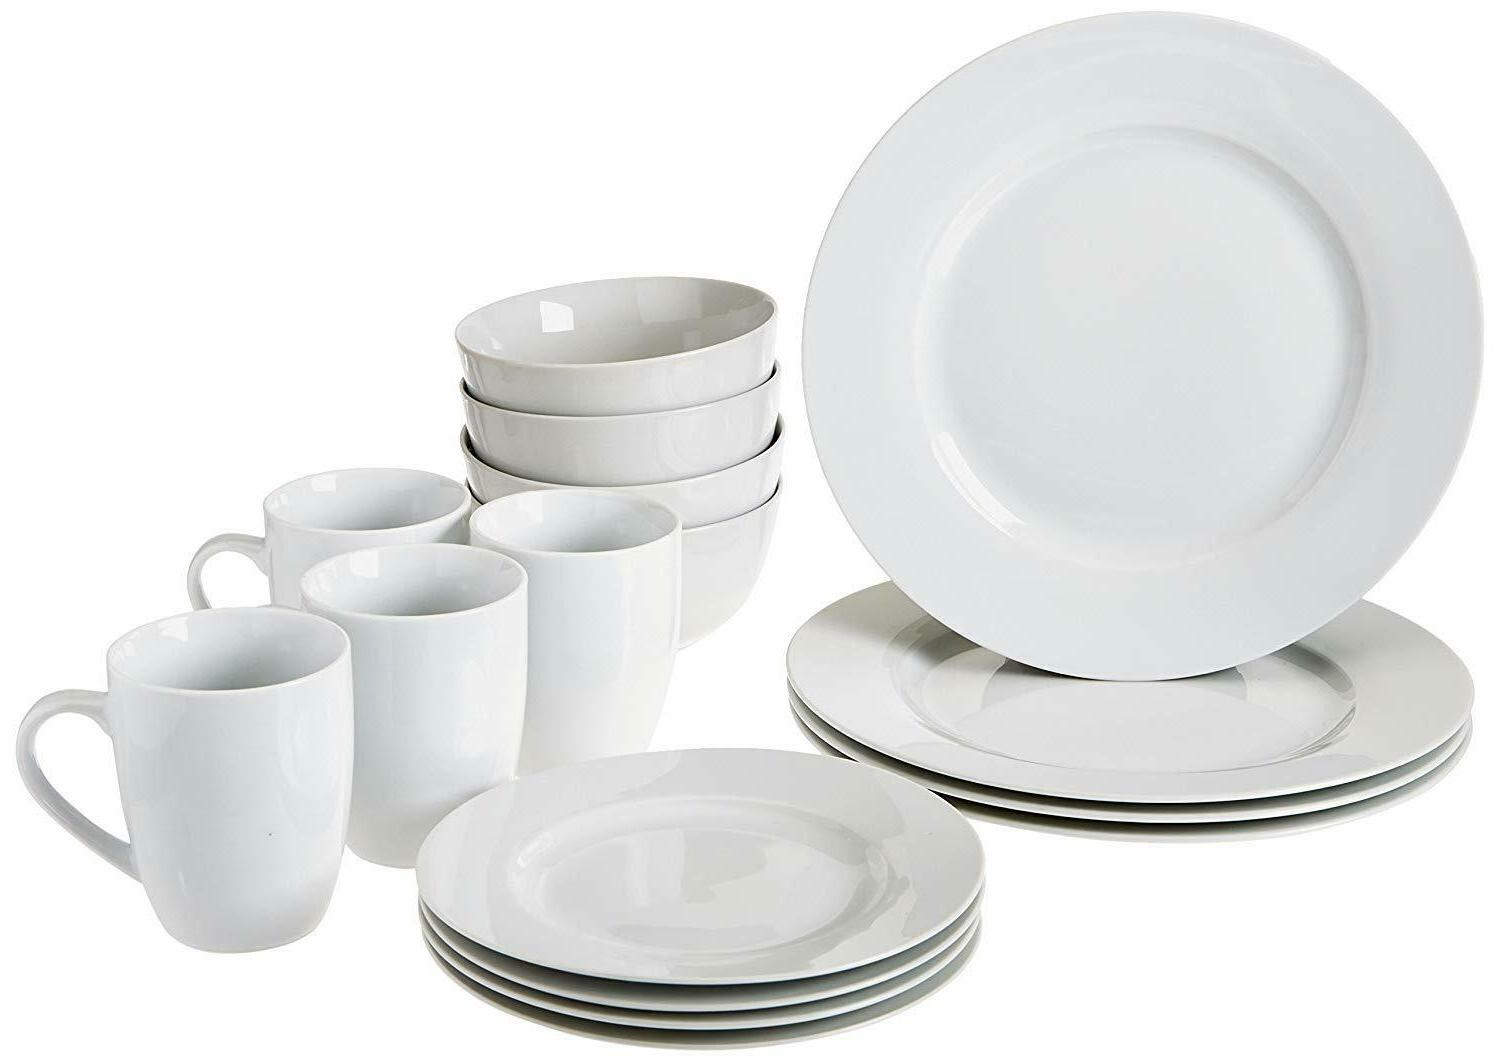 16 piece kitchen dinnerware set plates bowls